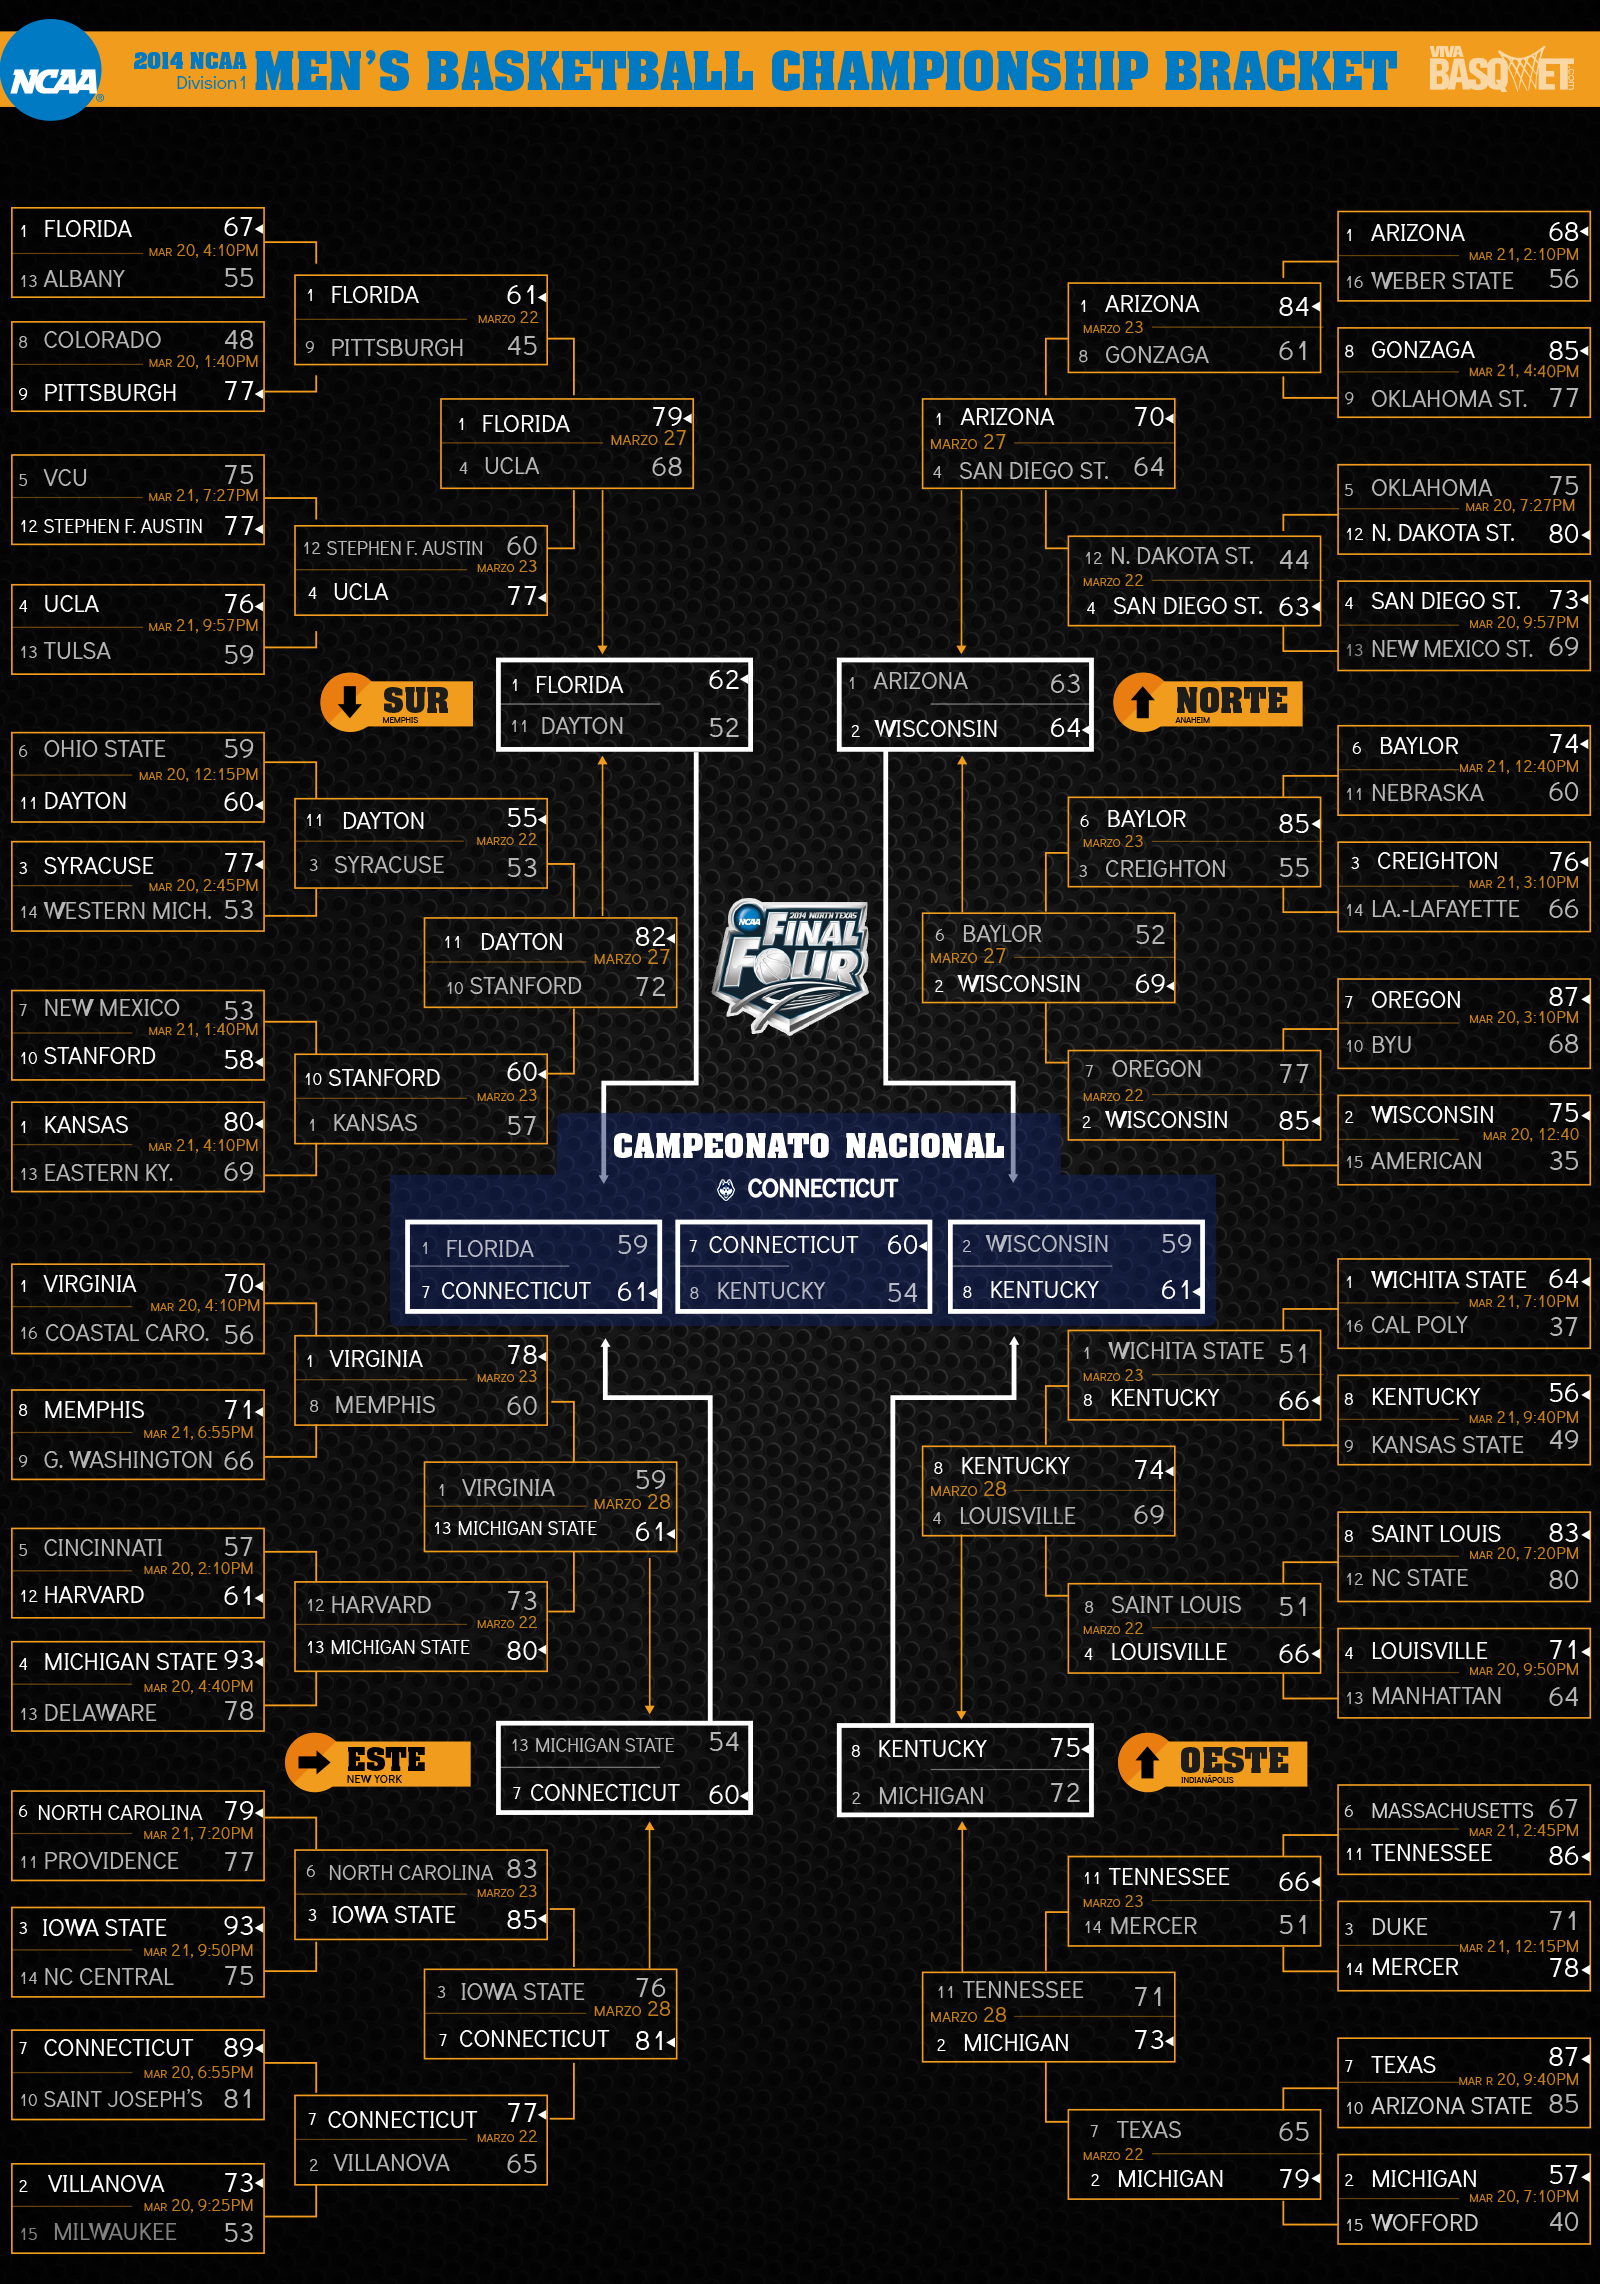 bracket NCAA final four en viva basquet